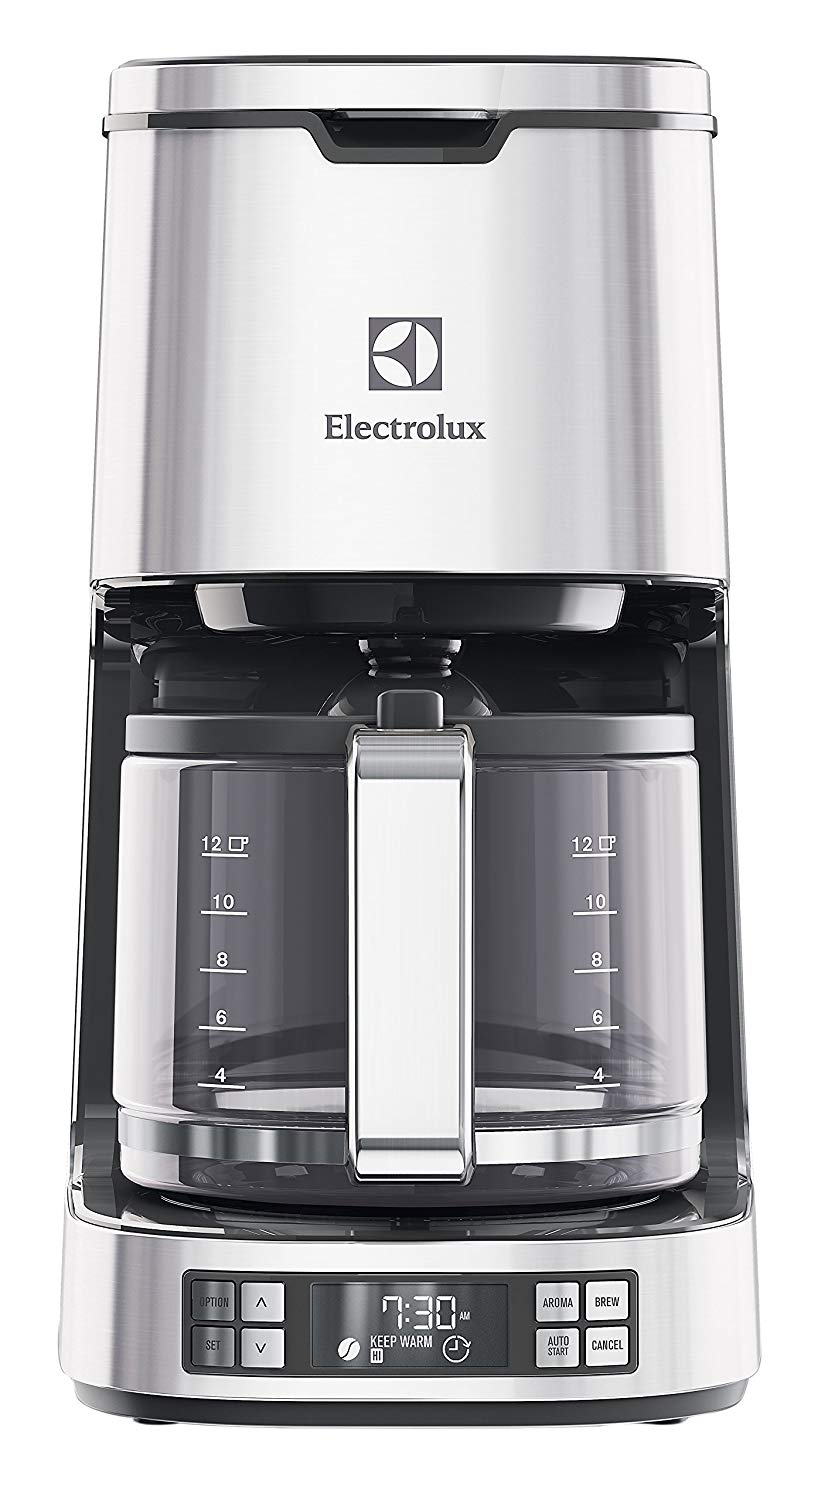 220V, Electrolux EKF7800 Filter Coffee Machine, Electric Filter Coffee Maker, Kettle, Tea Machine